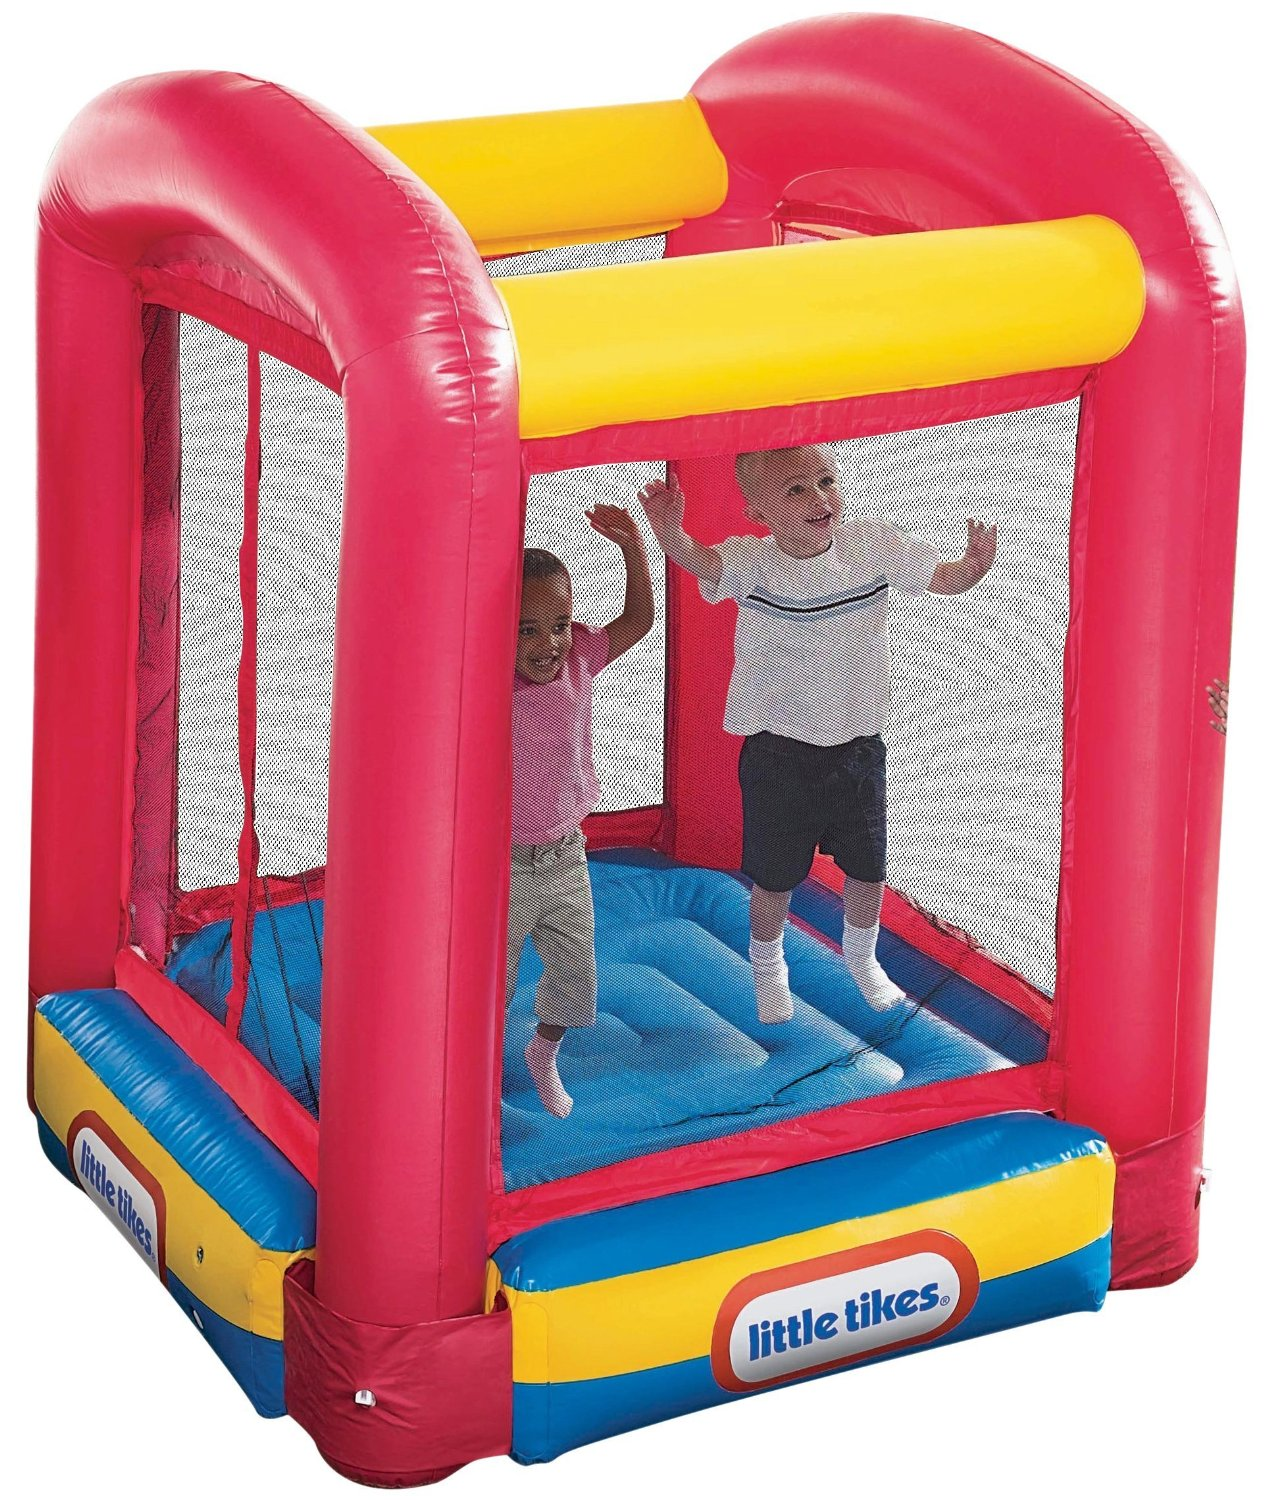 lovely little tikes bounce house made of caoutchouc in yellow blue and red for play yard ideas